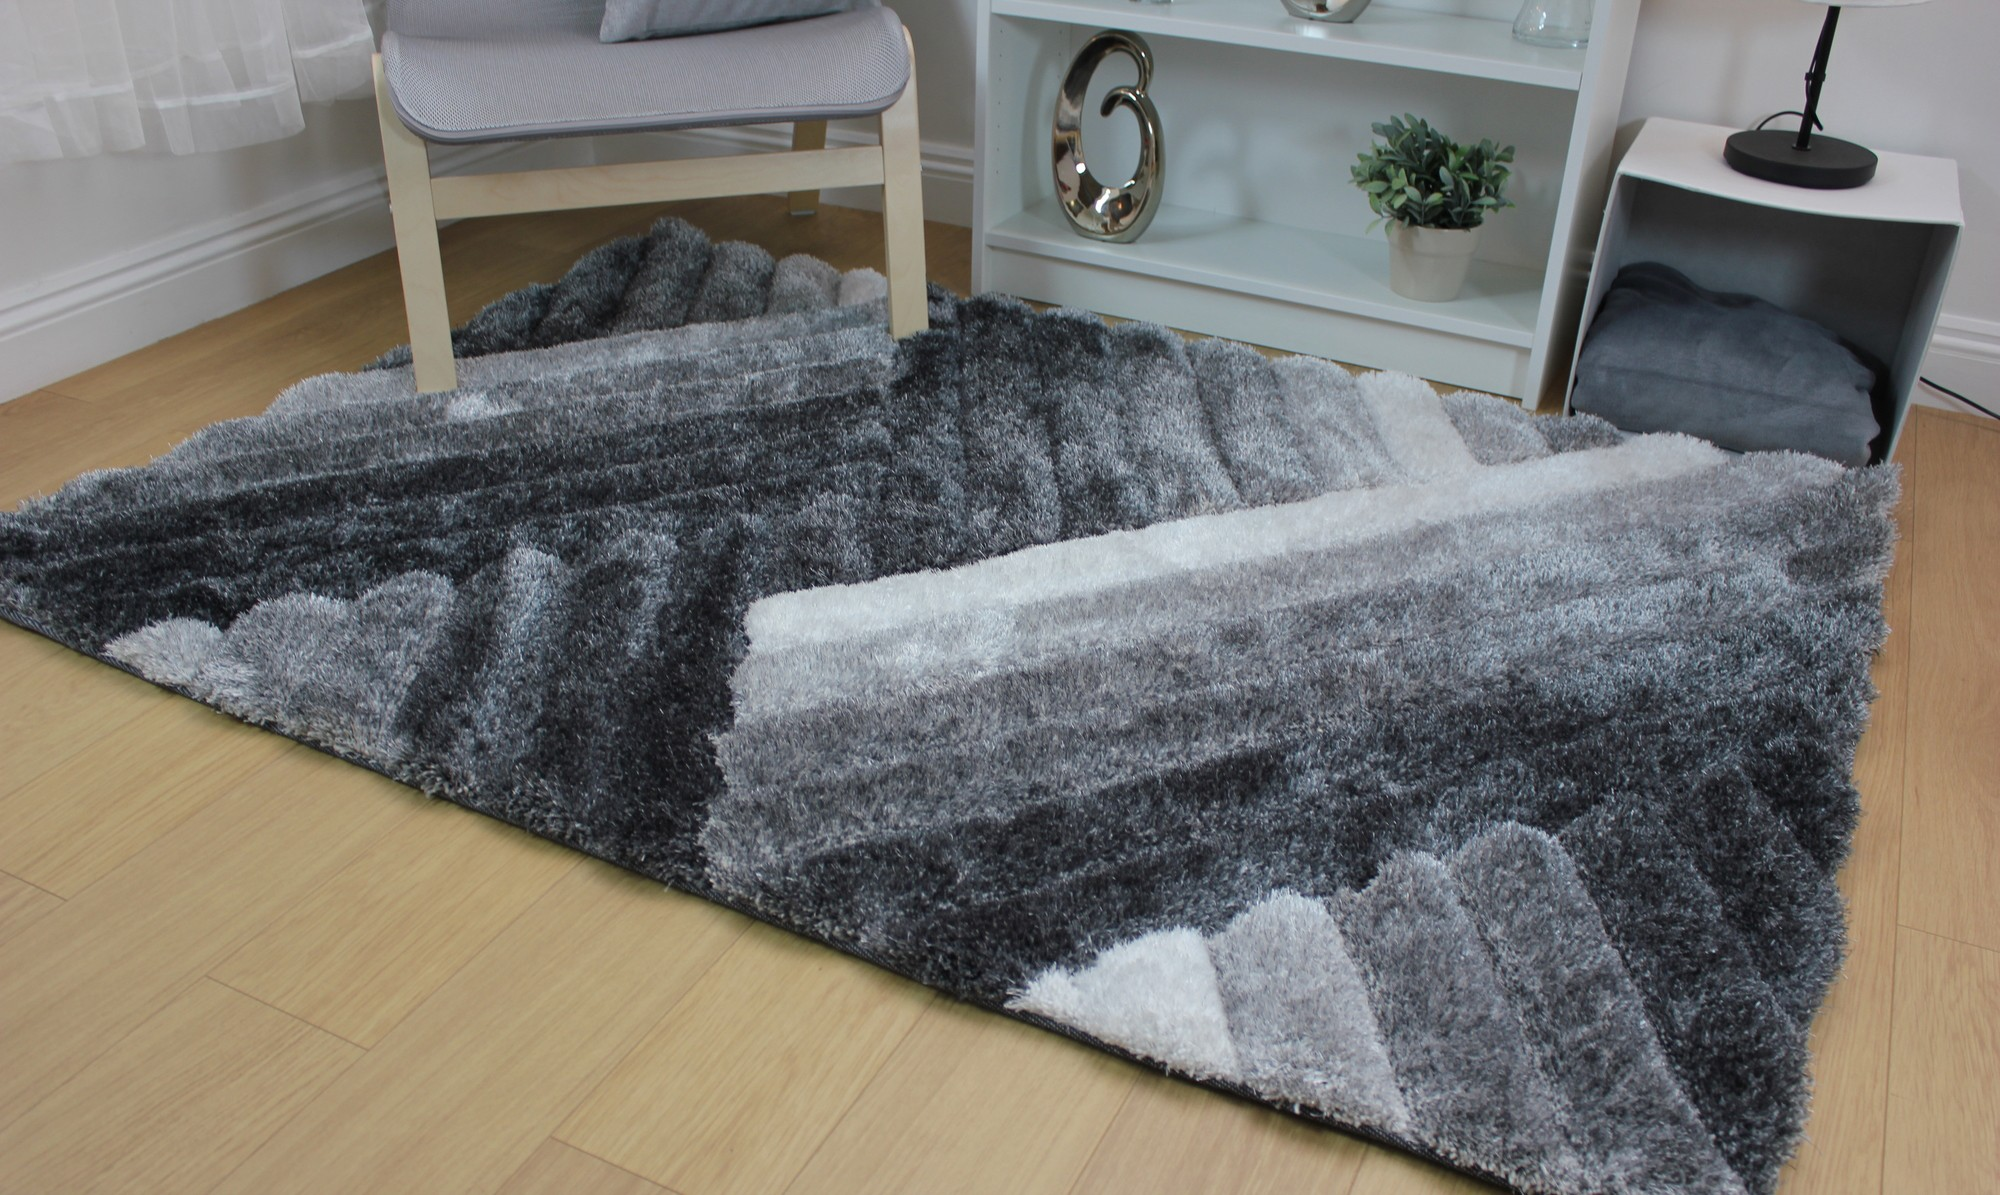 Rugs for March 4